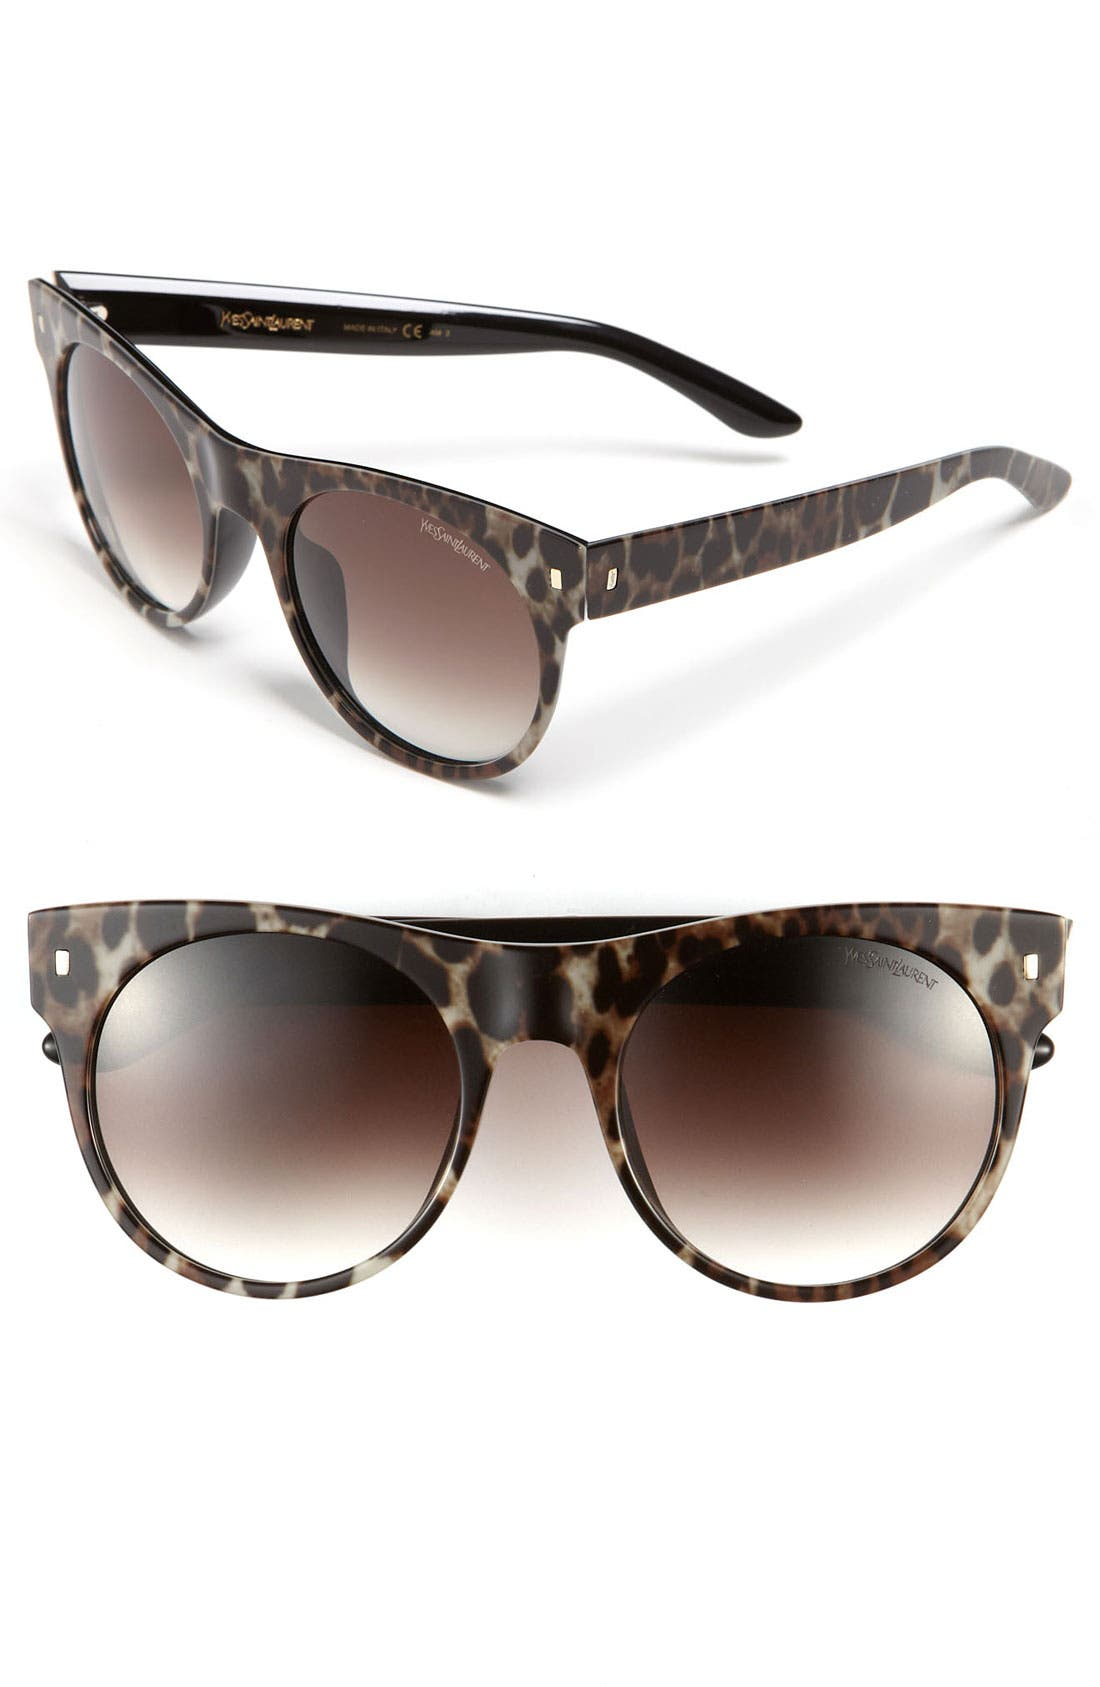 Main Image - Yves Saint Laurent Retro Sunglasses